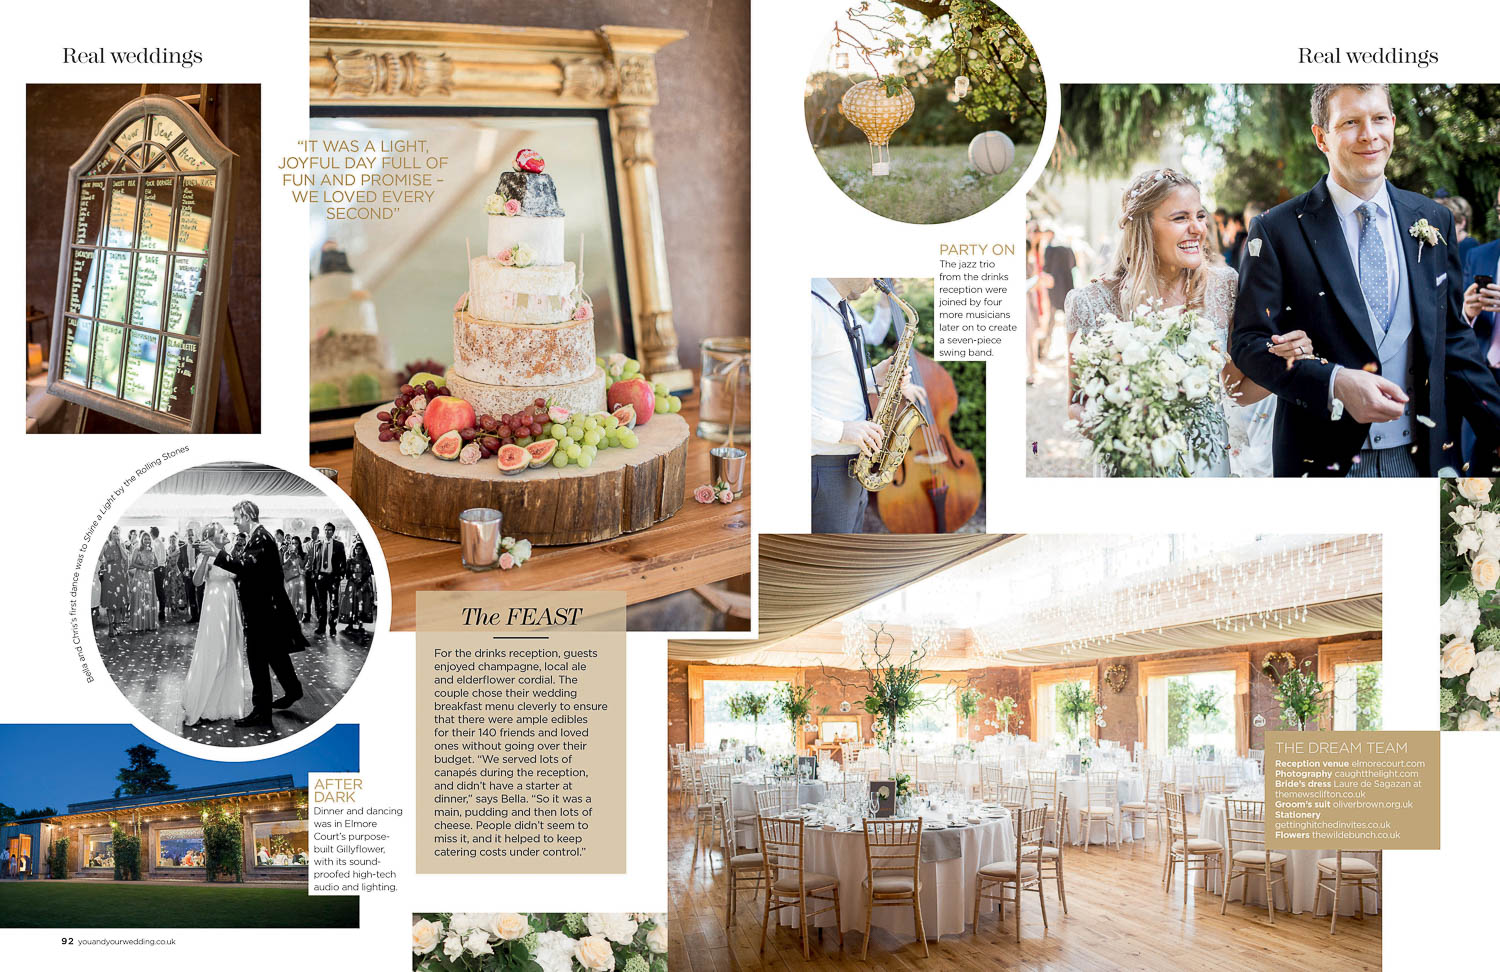 You & Your Wedding' Magazine Feature - Page 2